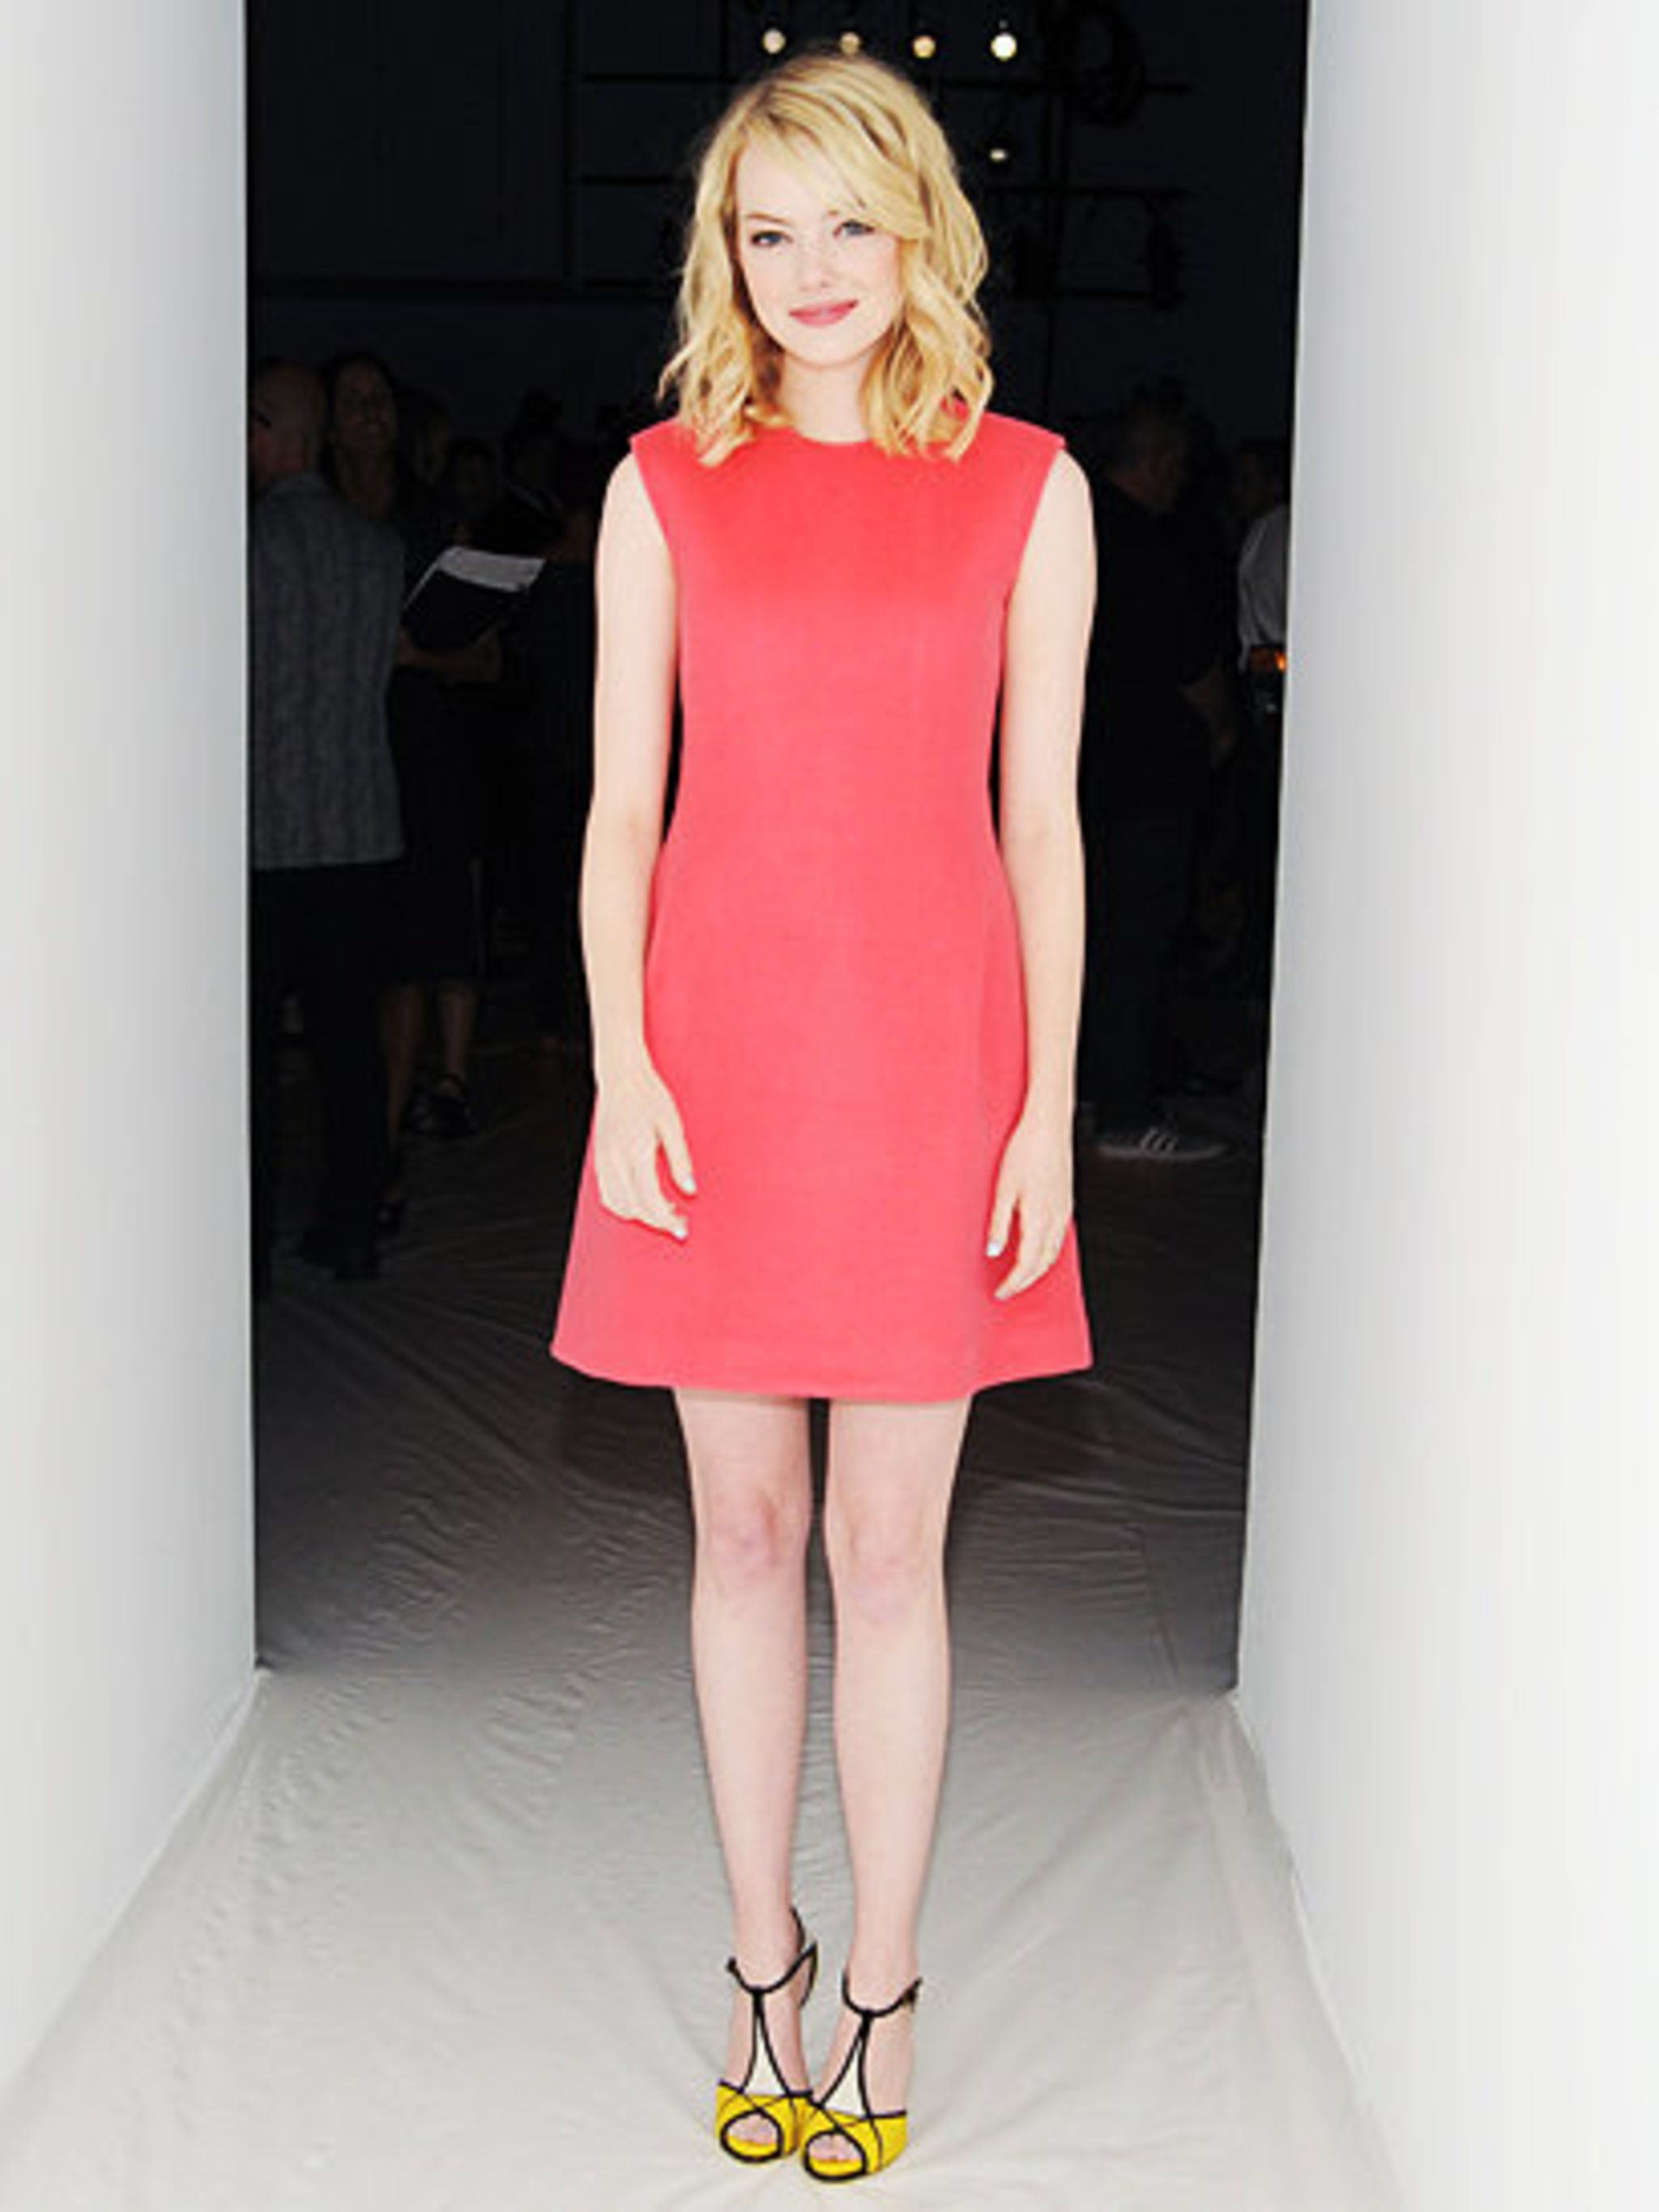 "<p><a href=""http://www.elleuk.com/star-style/celebrity-style-files/emma-stone"">Emma Stone</a> at the <a href=""http://www.elleuk.com/catwalk/designer-a-z/calvin-klein-collection/spring-summer-2013"">Calvin Klein Collection</a> show in New York</p>"